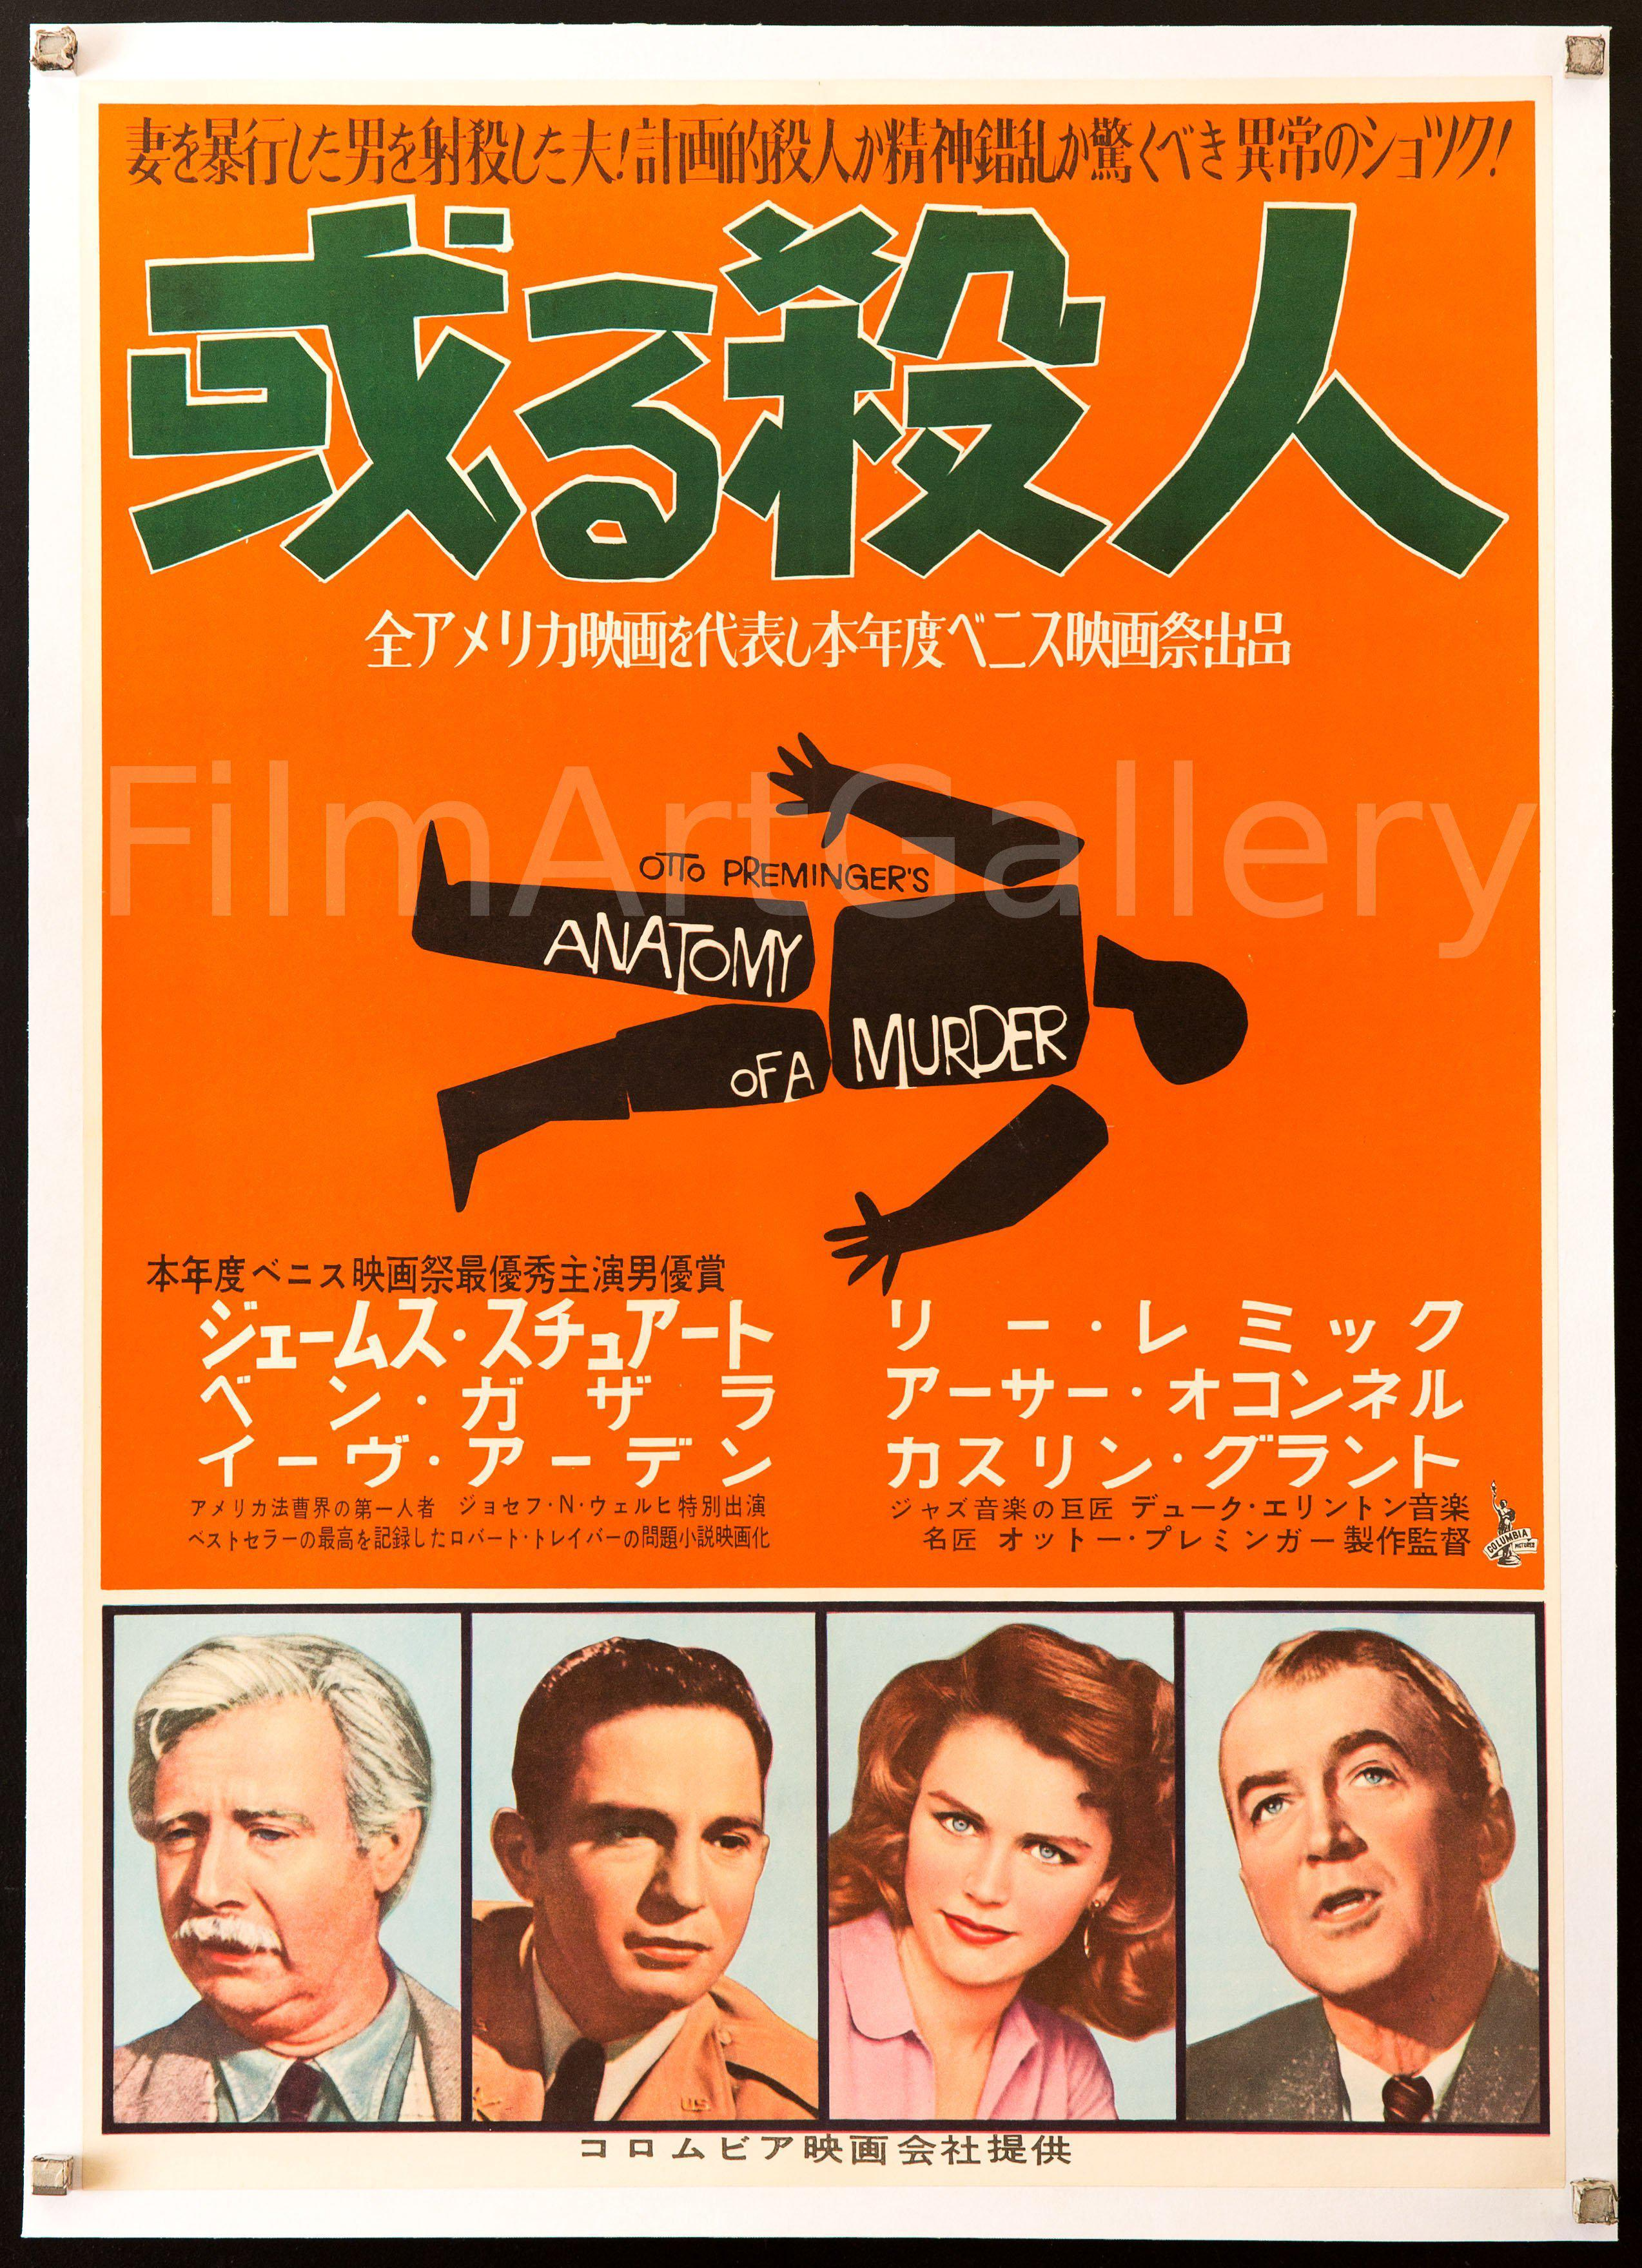 James Stewart Vintage Movie Posters Original Film Posters Film